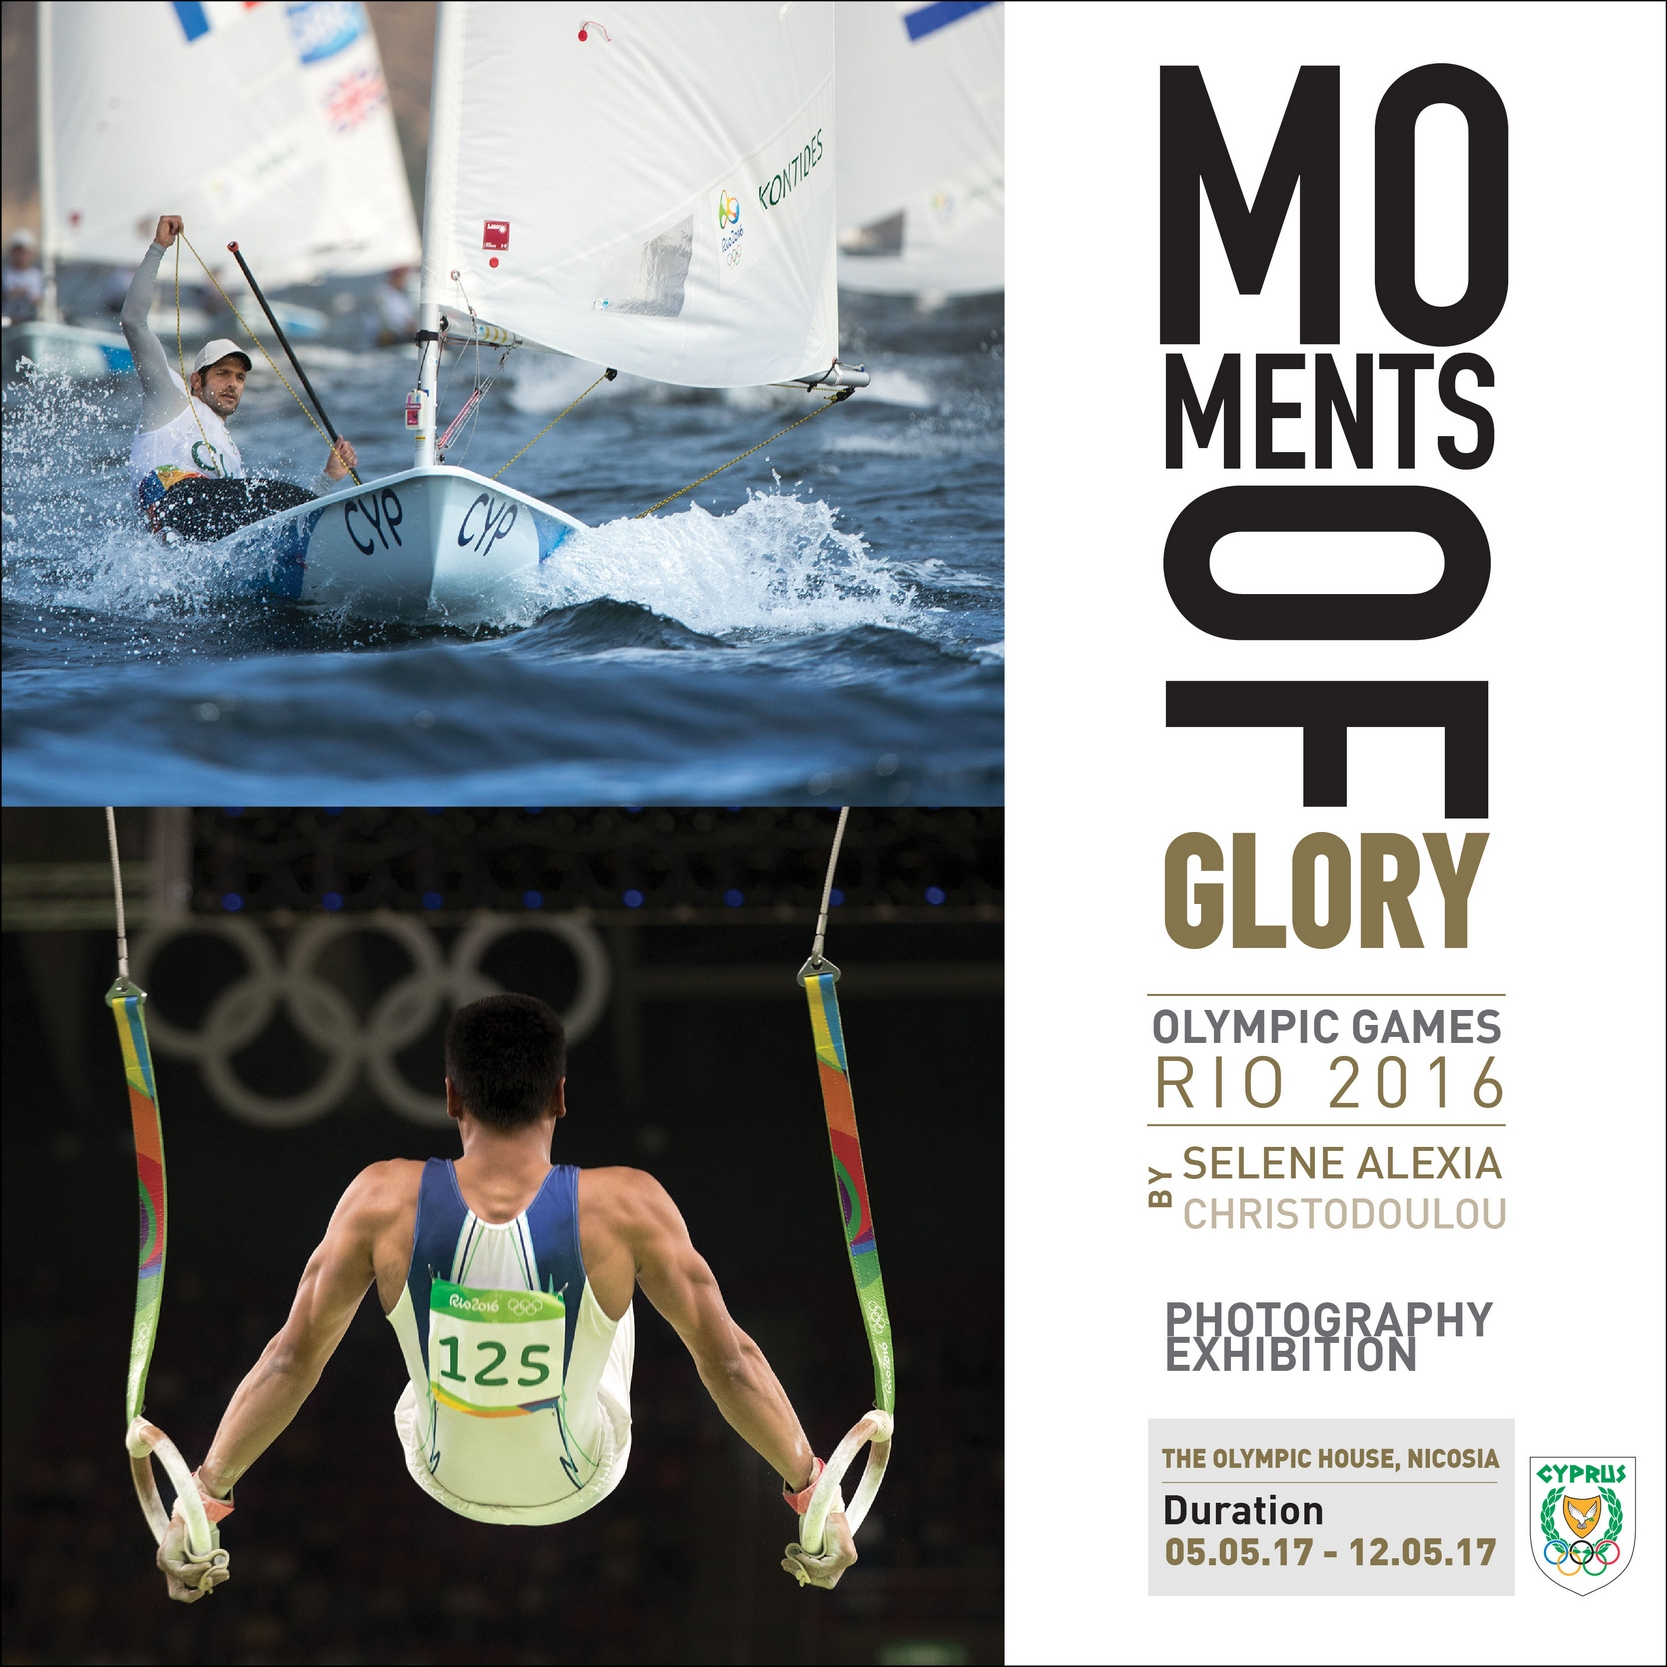 Moments of Glory pr rel 1